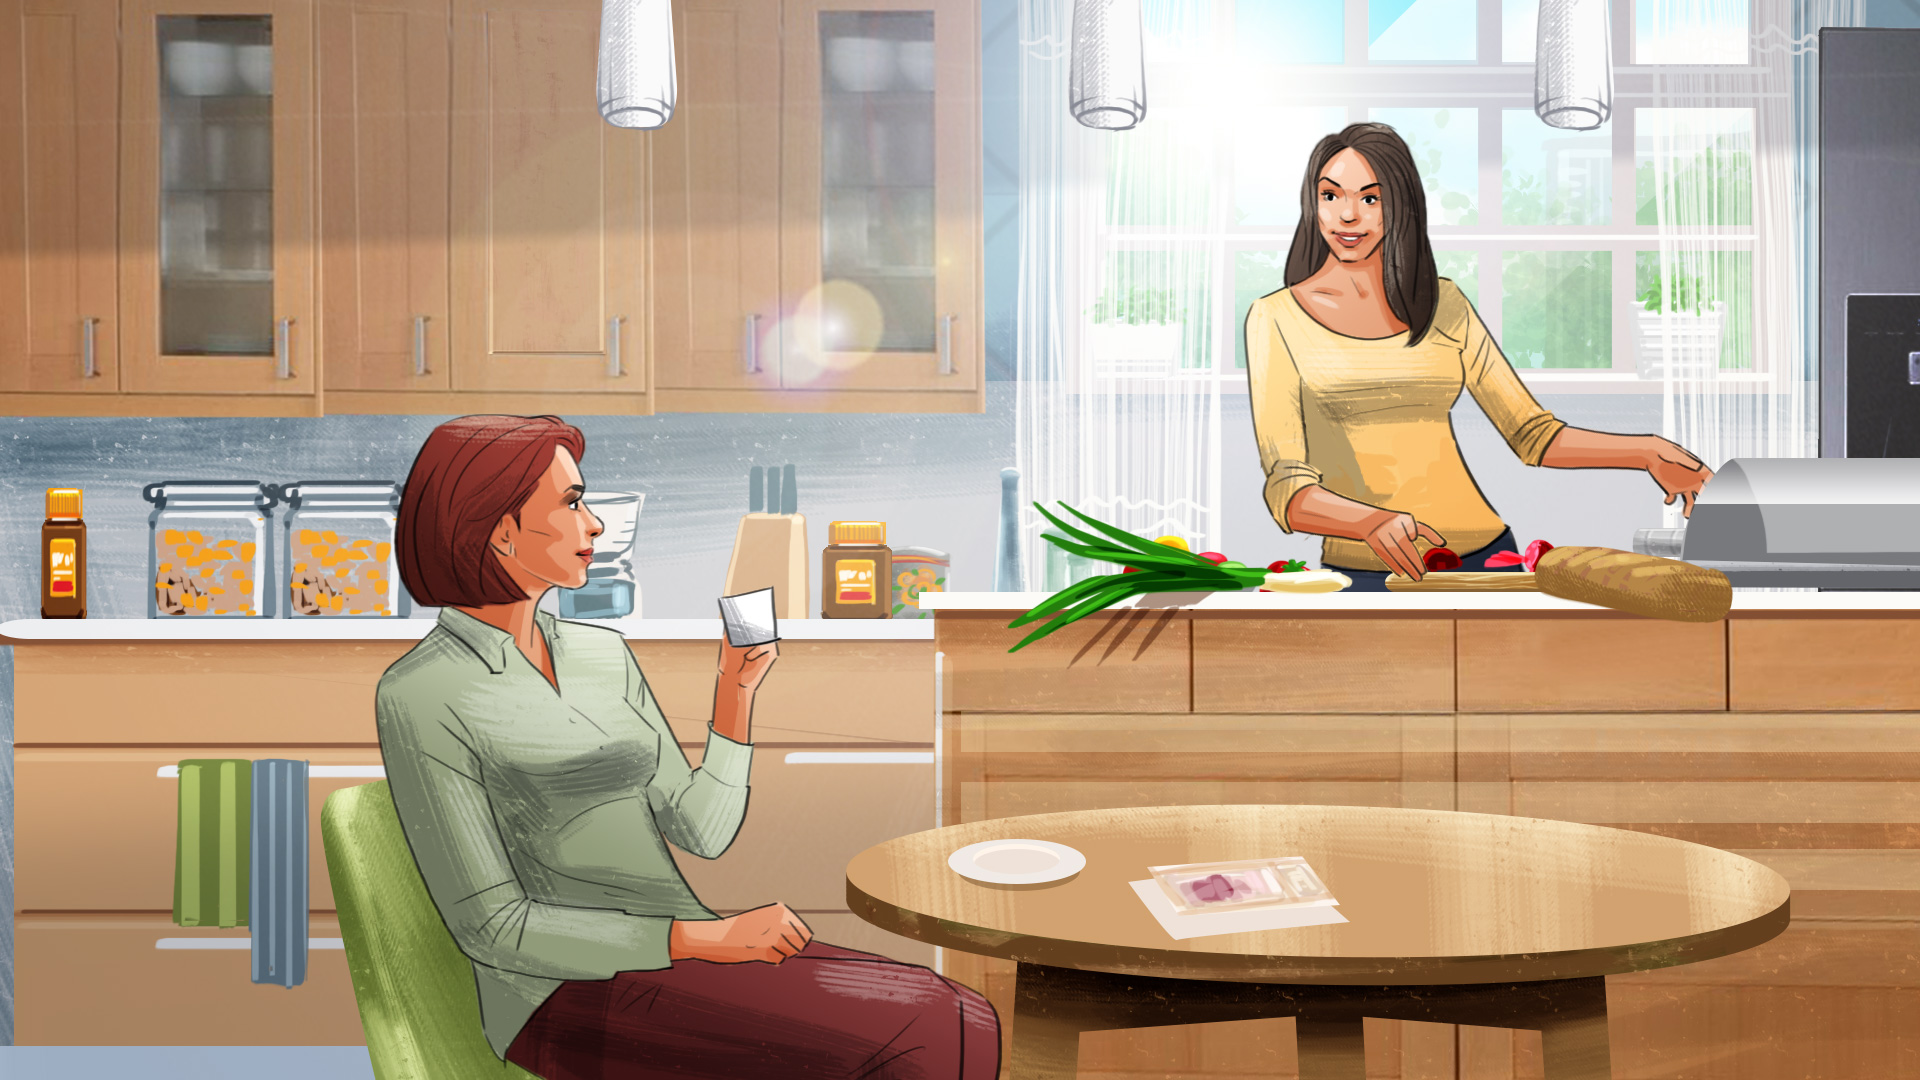 women talks in the kitchen illustration advertising